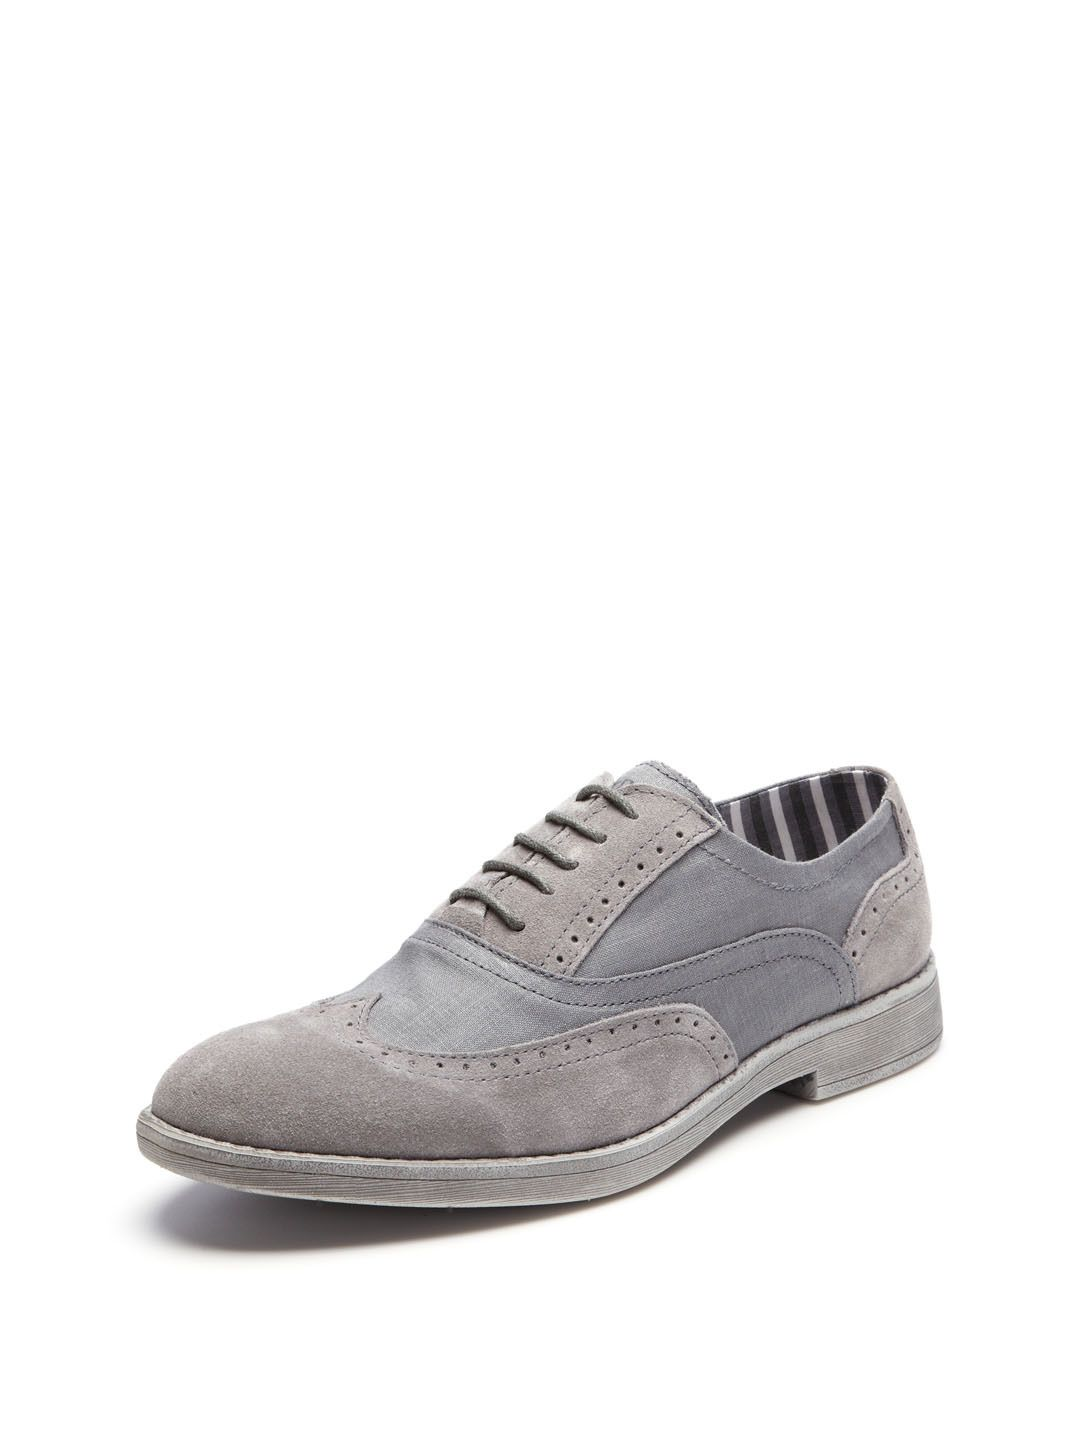 Hey dude shoes.. Suede n canvas.. $59